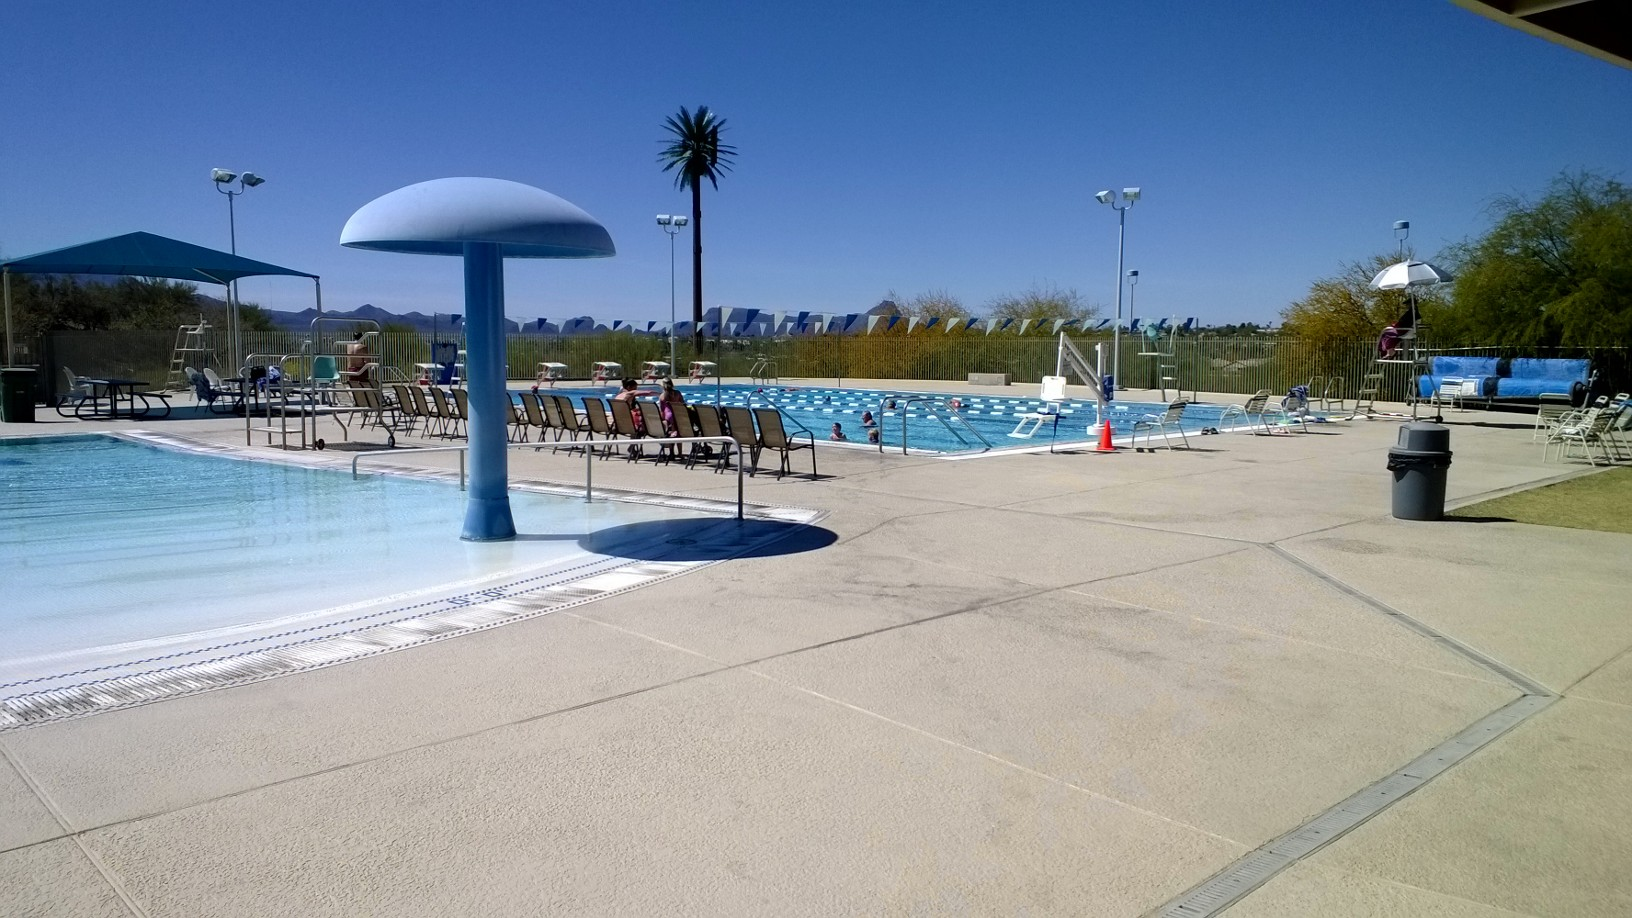 Thad Terry Aquatic Center (Tucson)